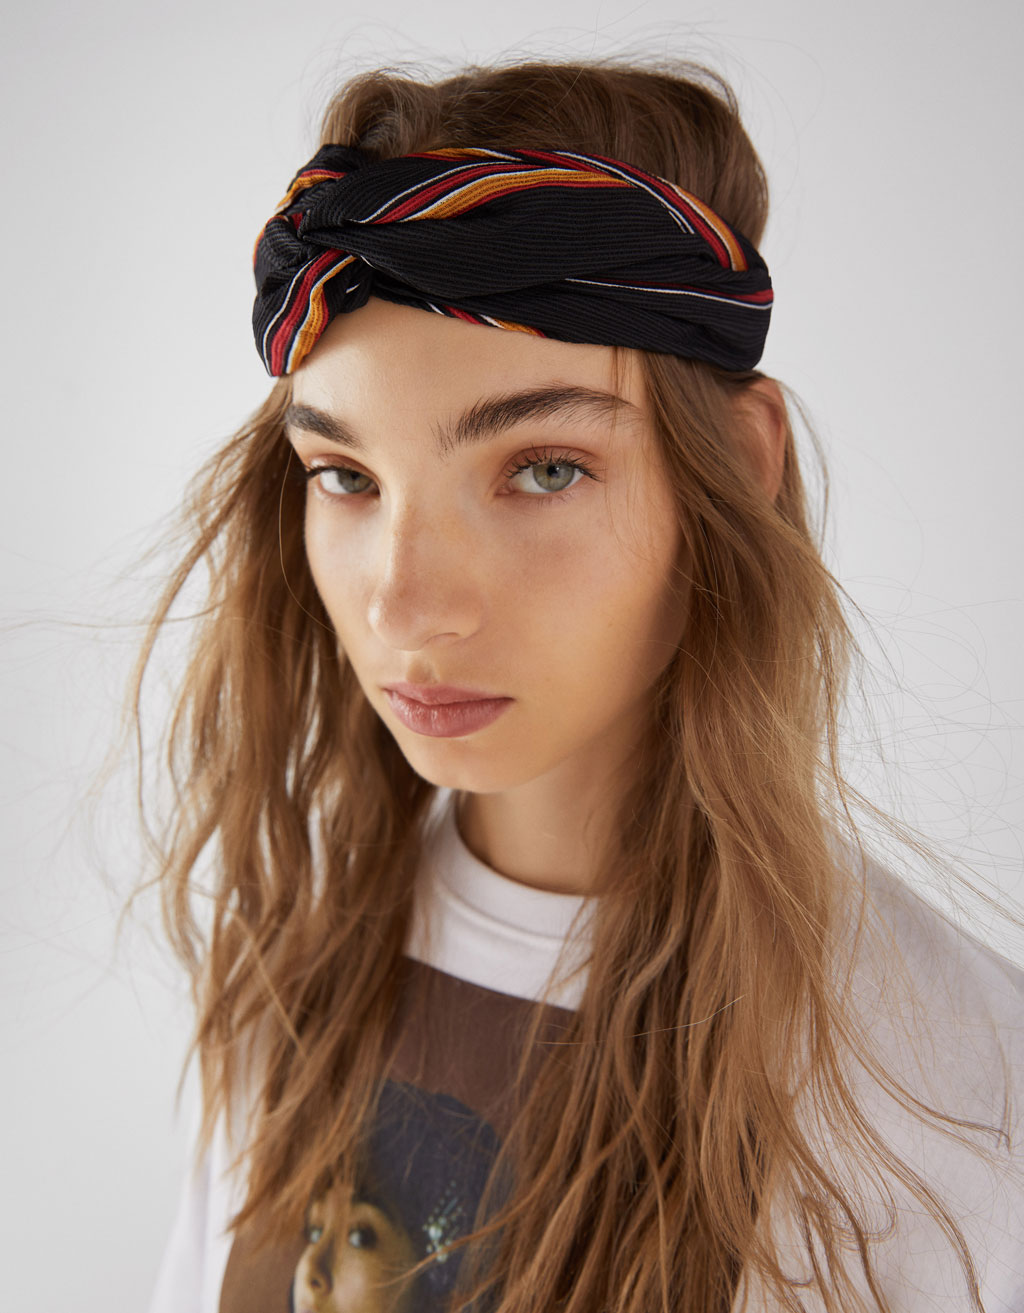 Striped turban-style headband